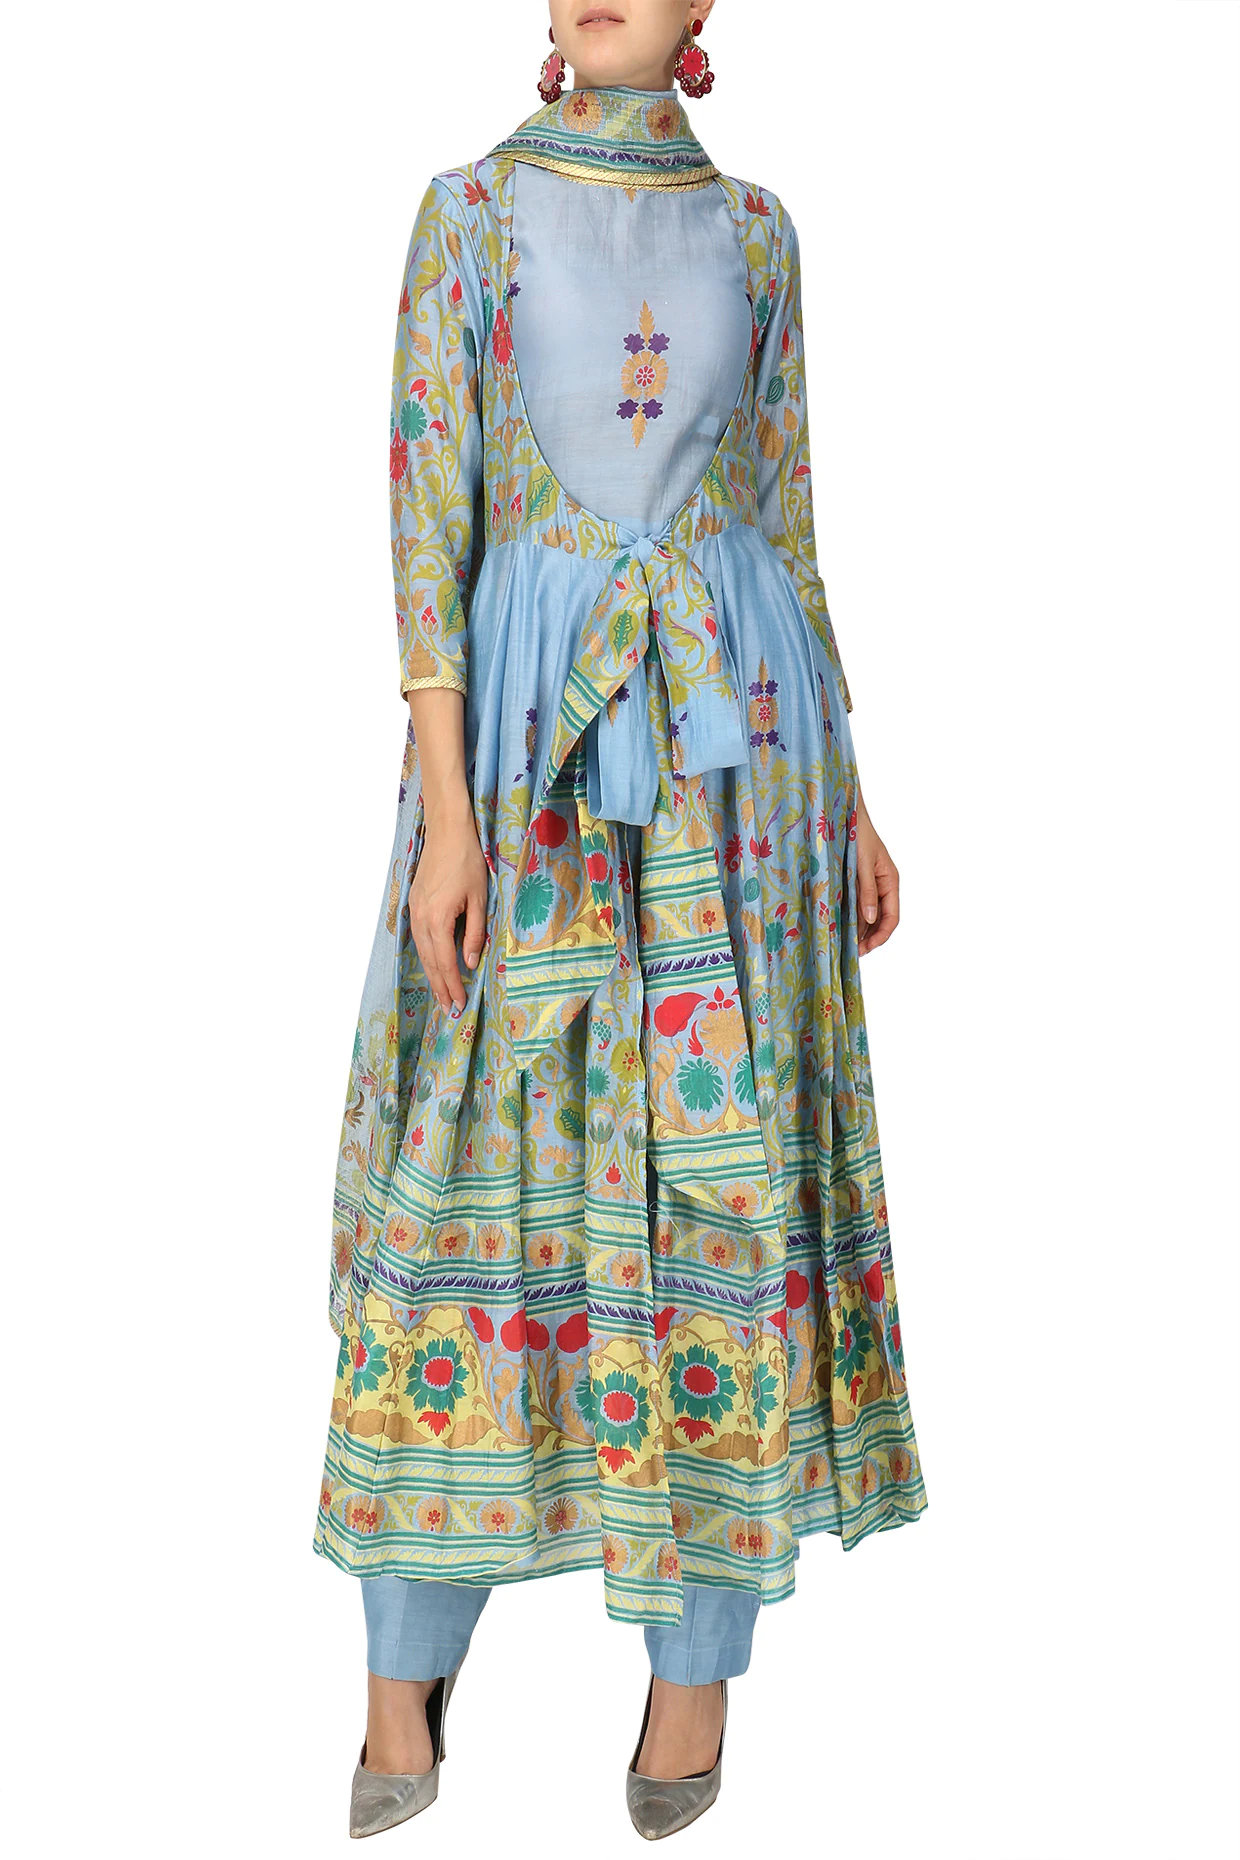 Powder Blue Hand Printed Anarkali Set by Surendri-Handpicked for You